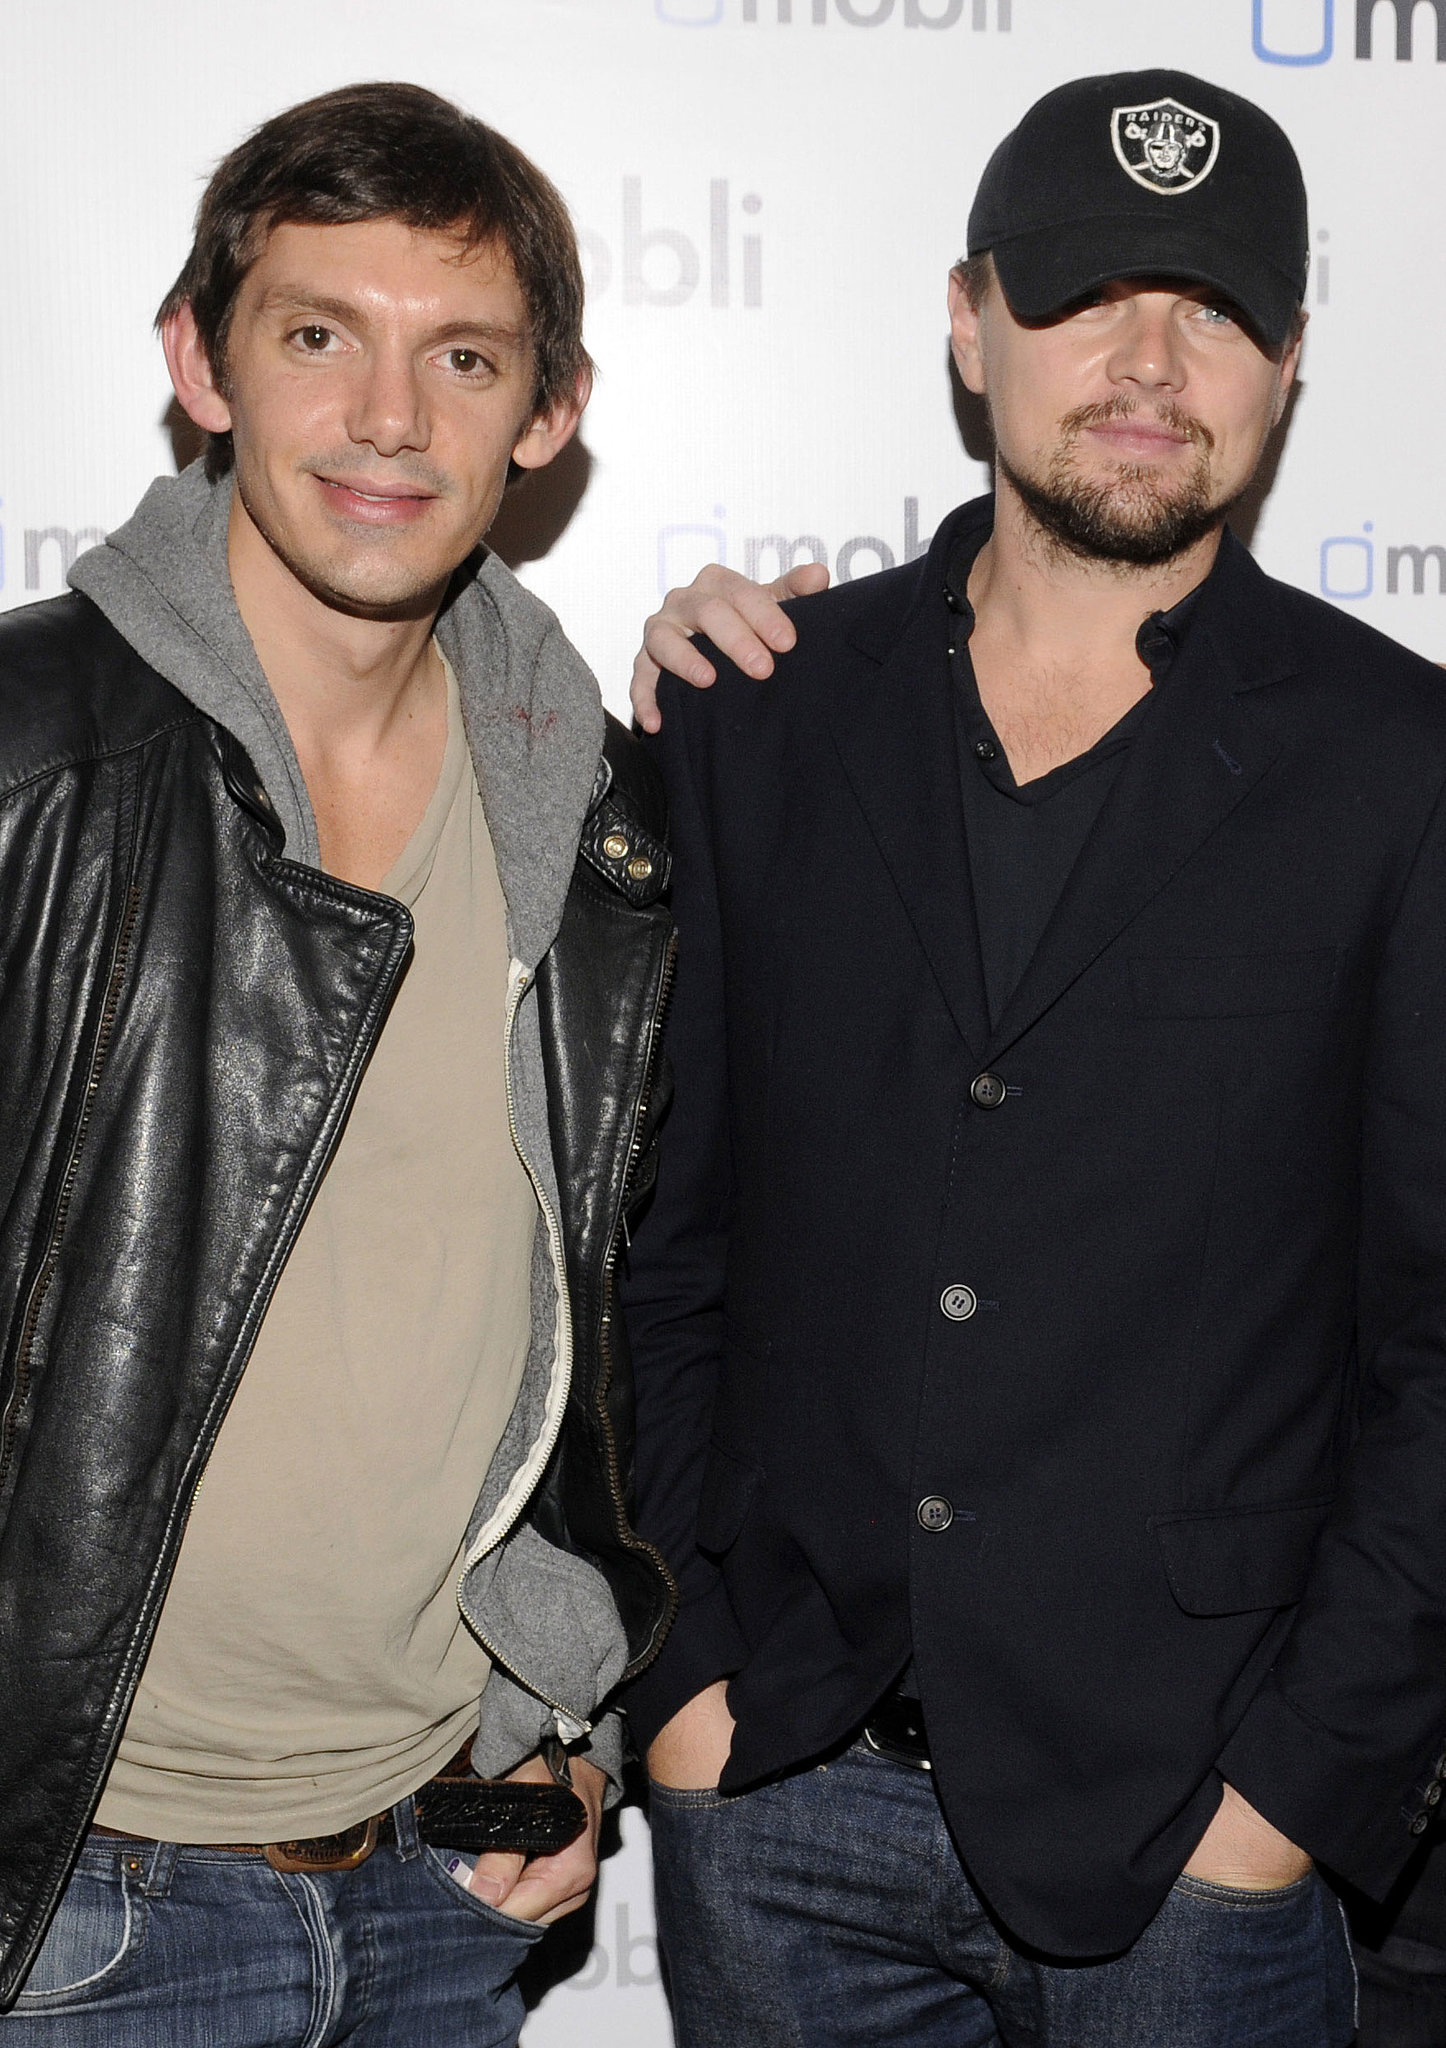 Leonardo DiCaprio and Lukas Haas have been buddies since they first met while auditioning in Hollywood years ago. They stick together for sports games and lavish vacations, an